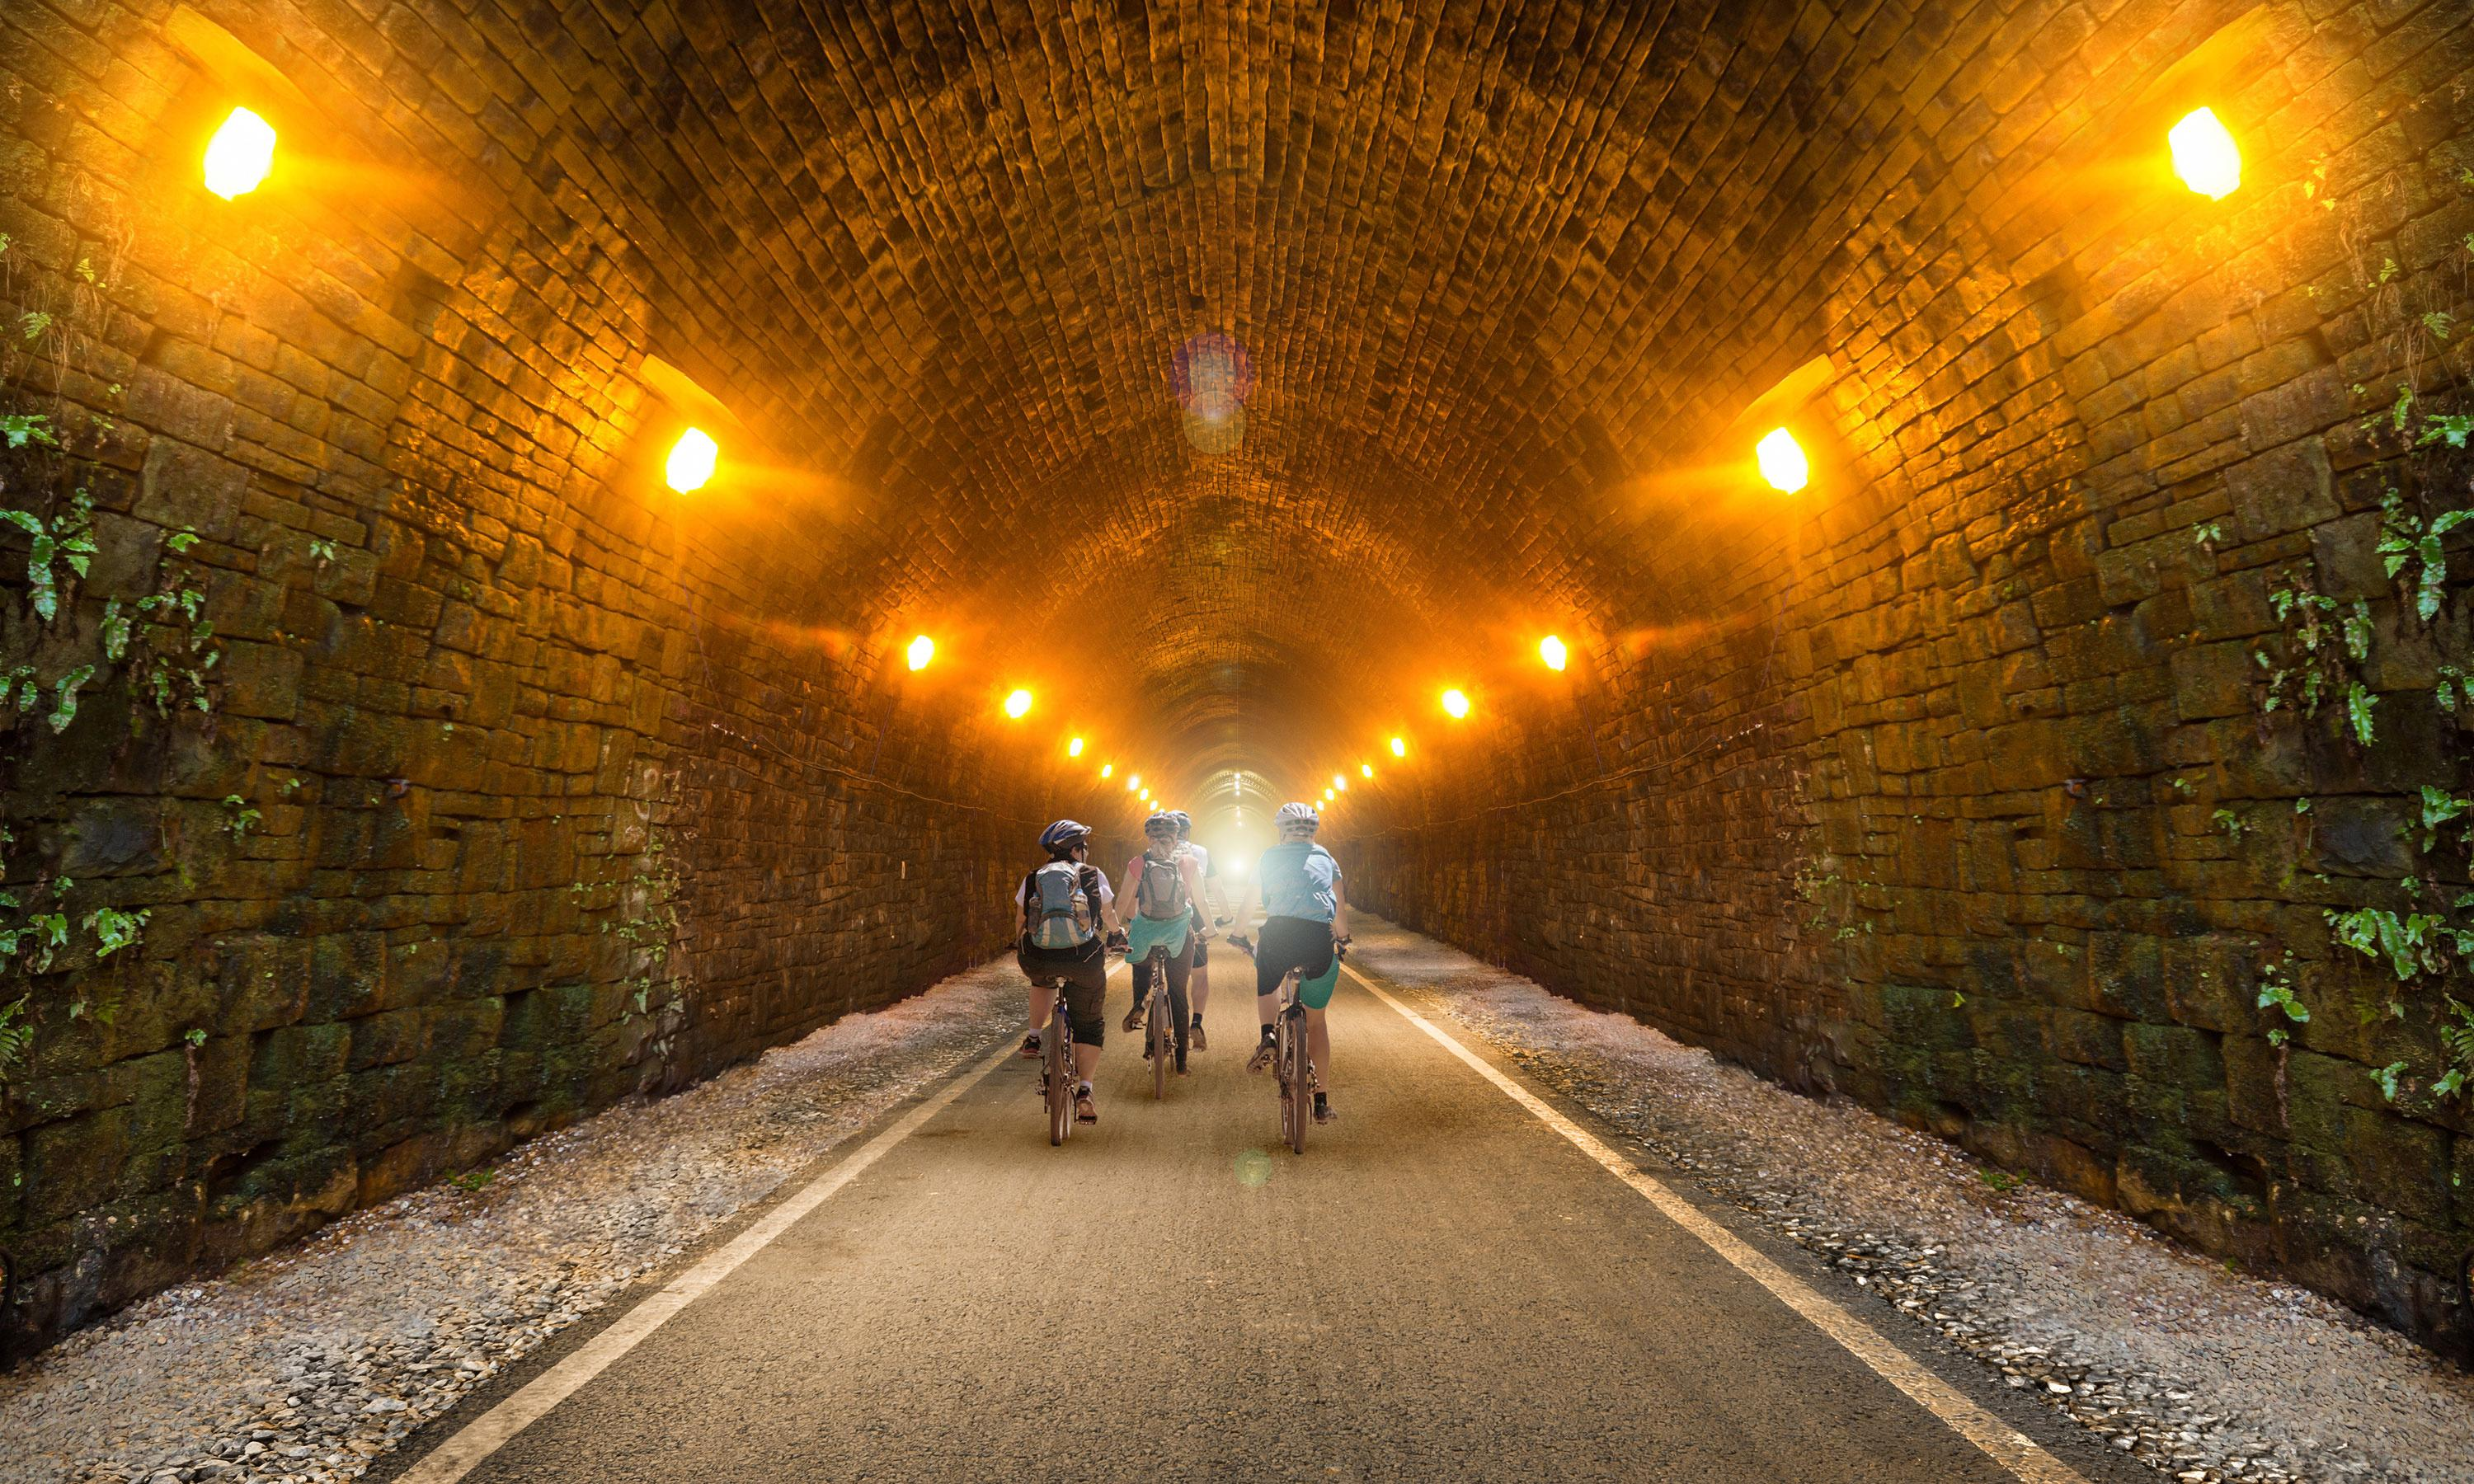 Campaign for Yorkshire cycle tunnel is backed by landowner